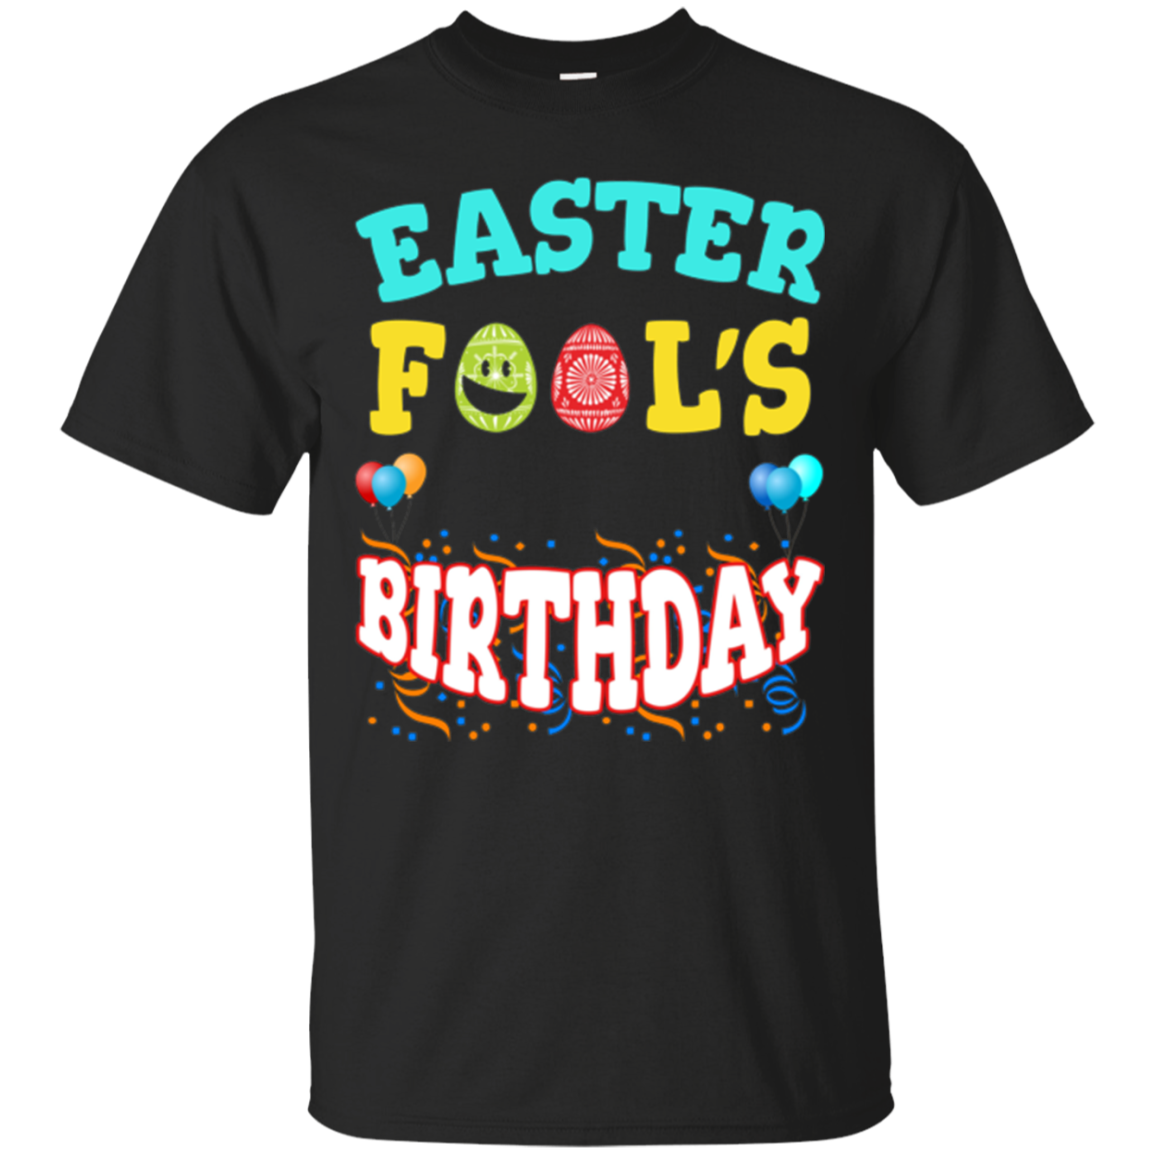 April fools day teeheavenly funny april fools day easter birthday t shirts tees gifts negle Choice Image